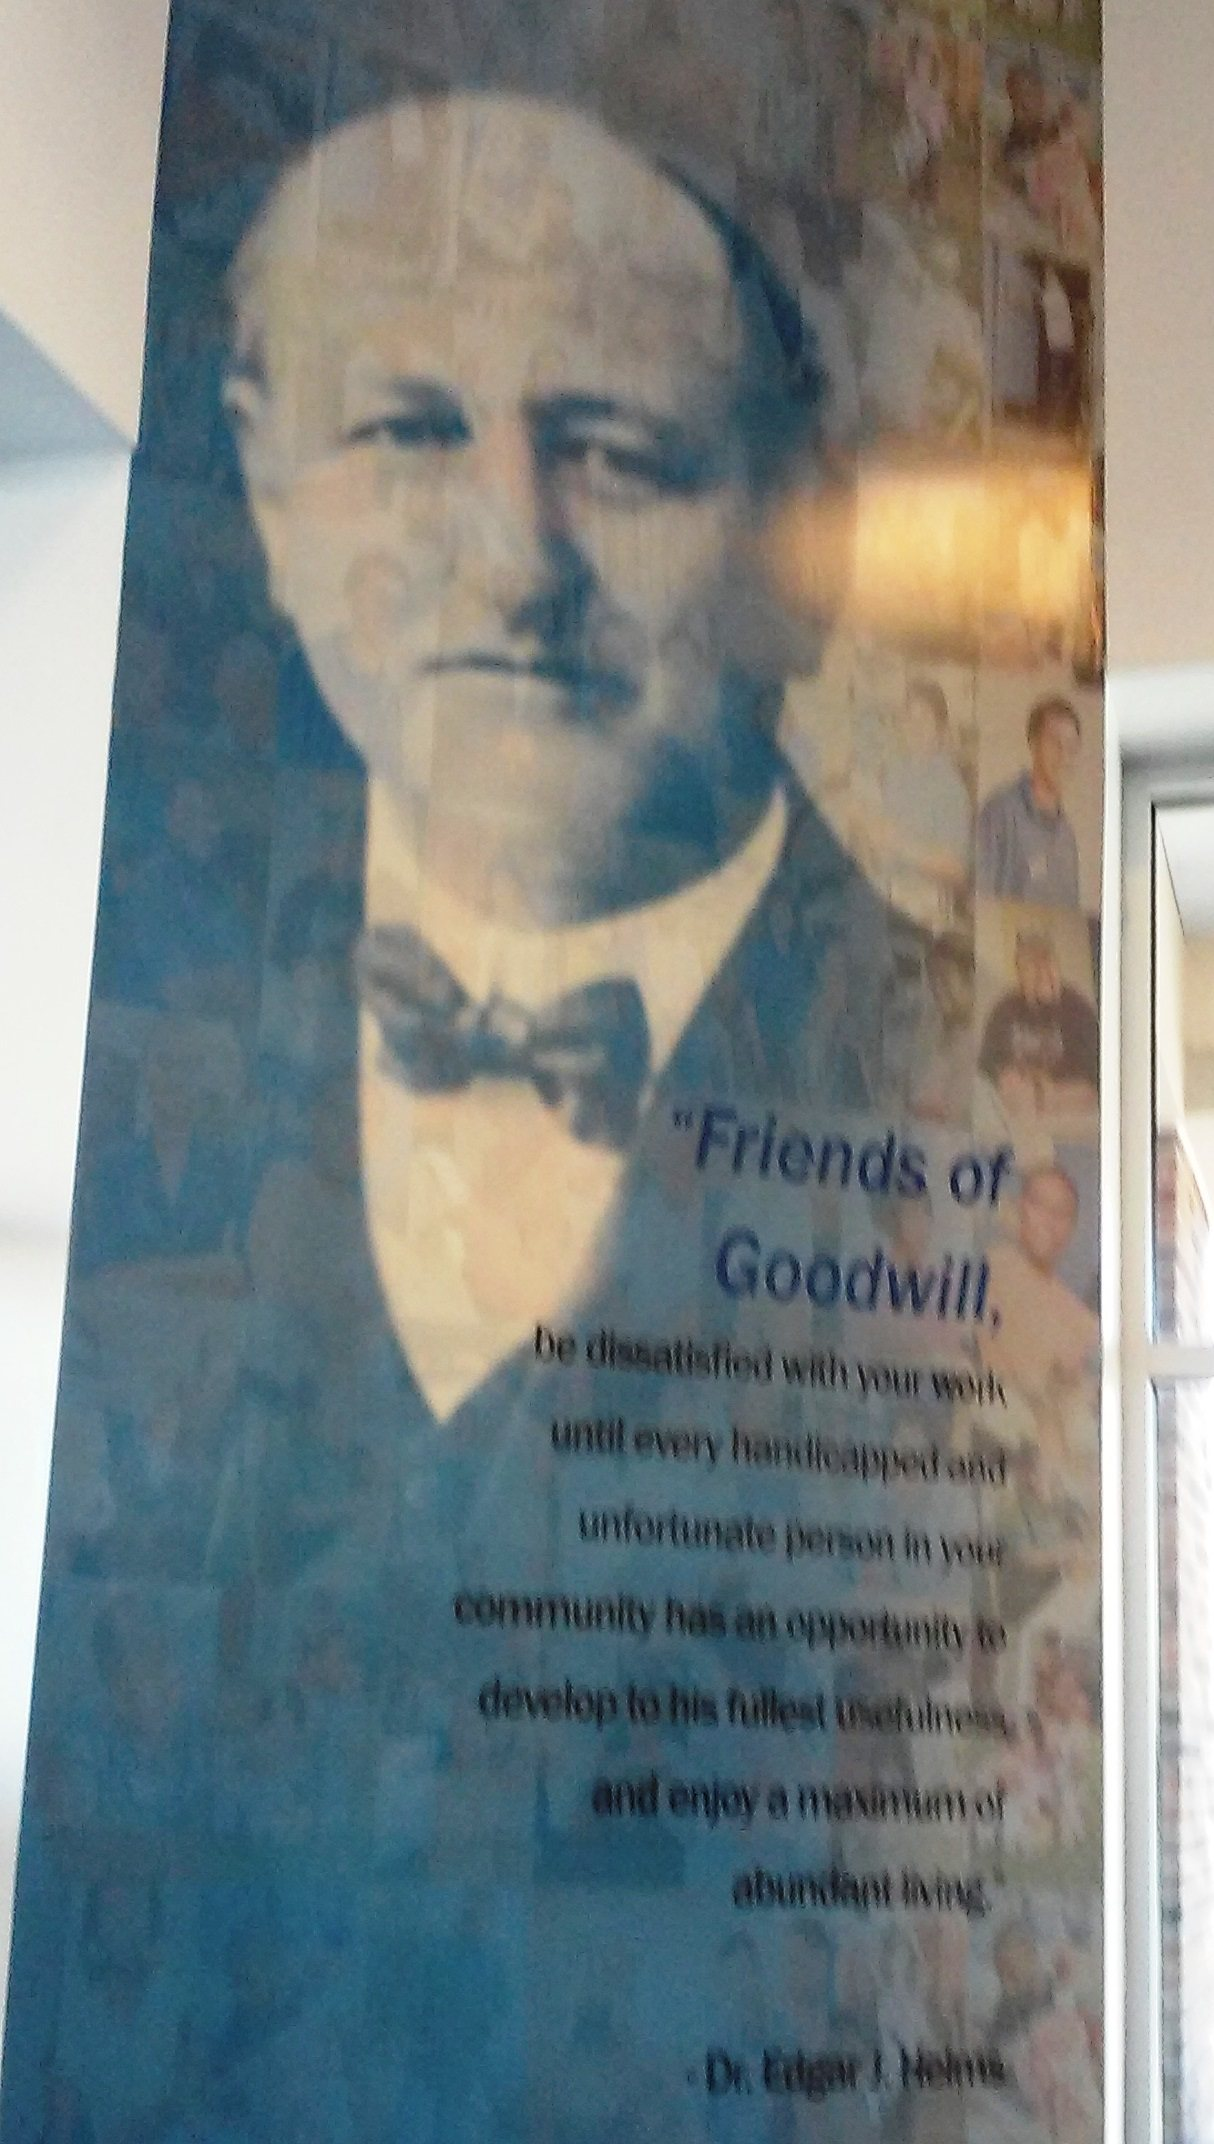 Goodwill Industries founder Edgar Helms